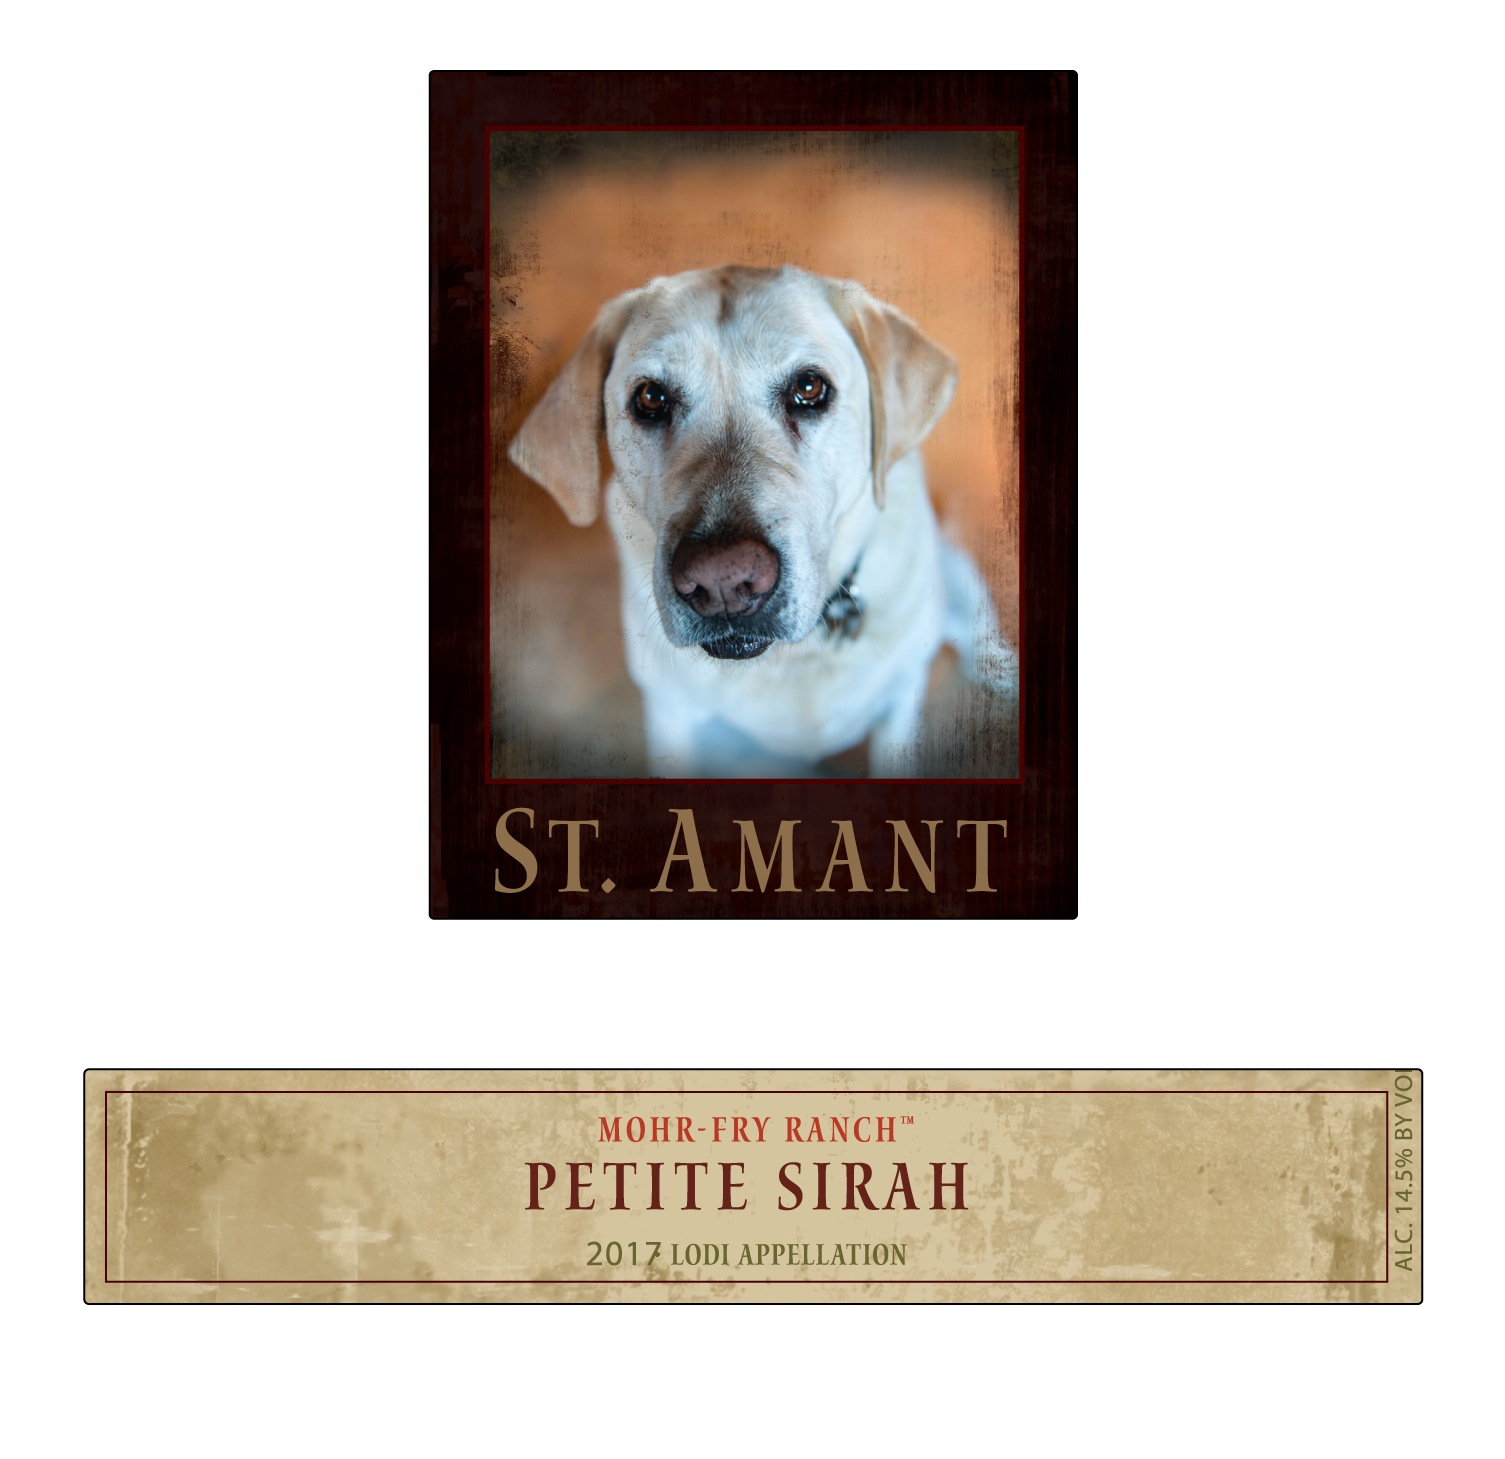 St. Amant Mohr-Fry Ranch Petite Sirah